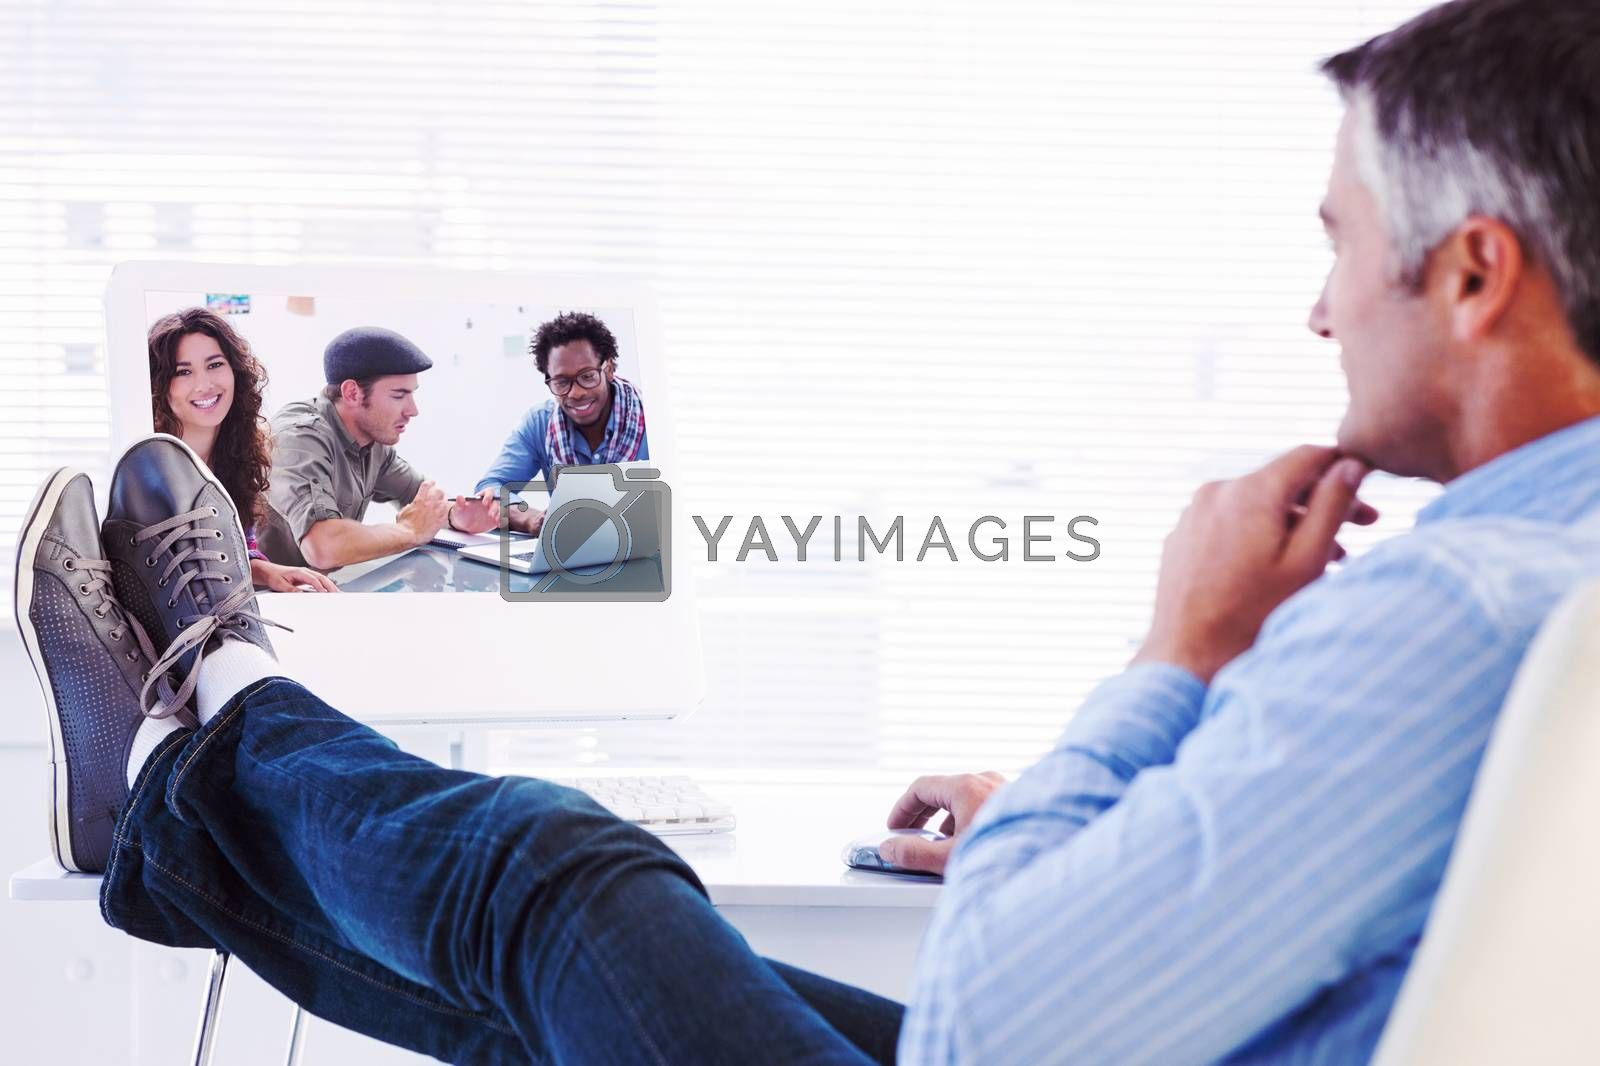 Relaxed man with feet on desk using computer against creative team working together with one smiling at camera